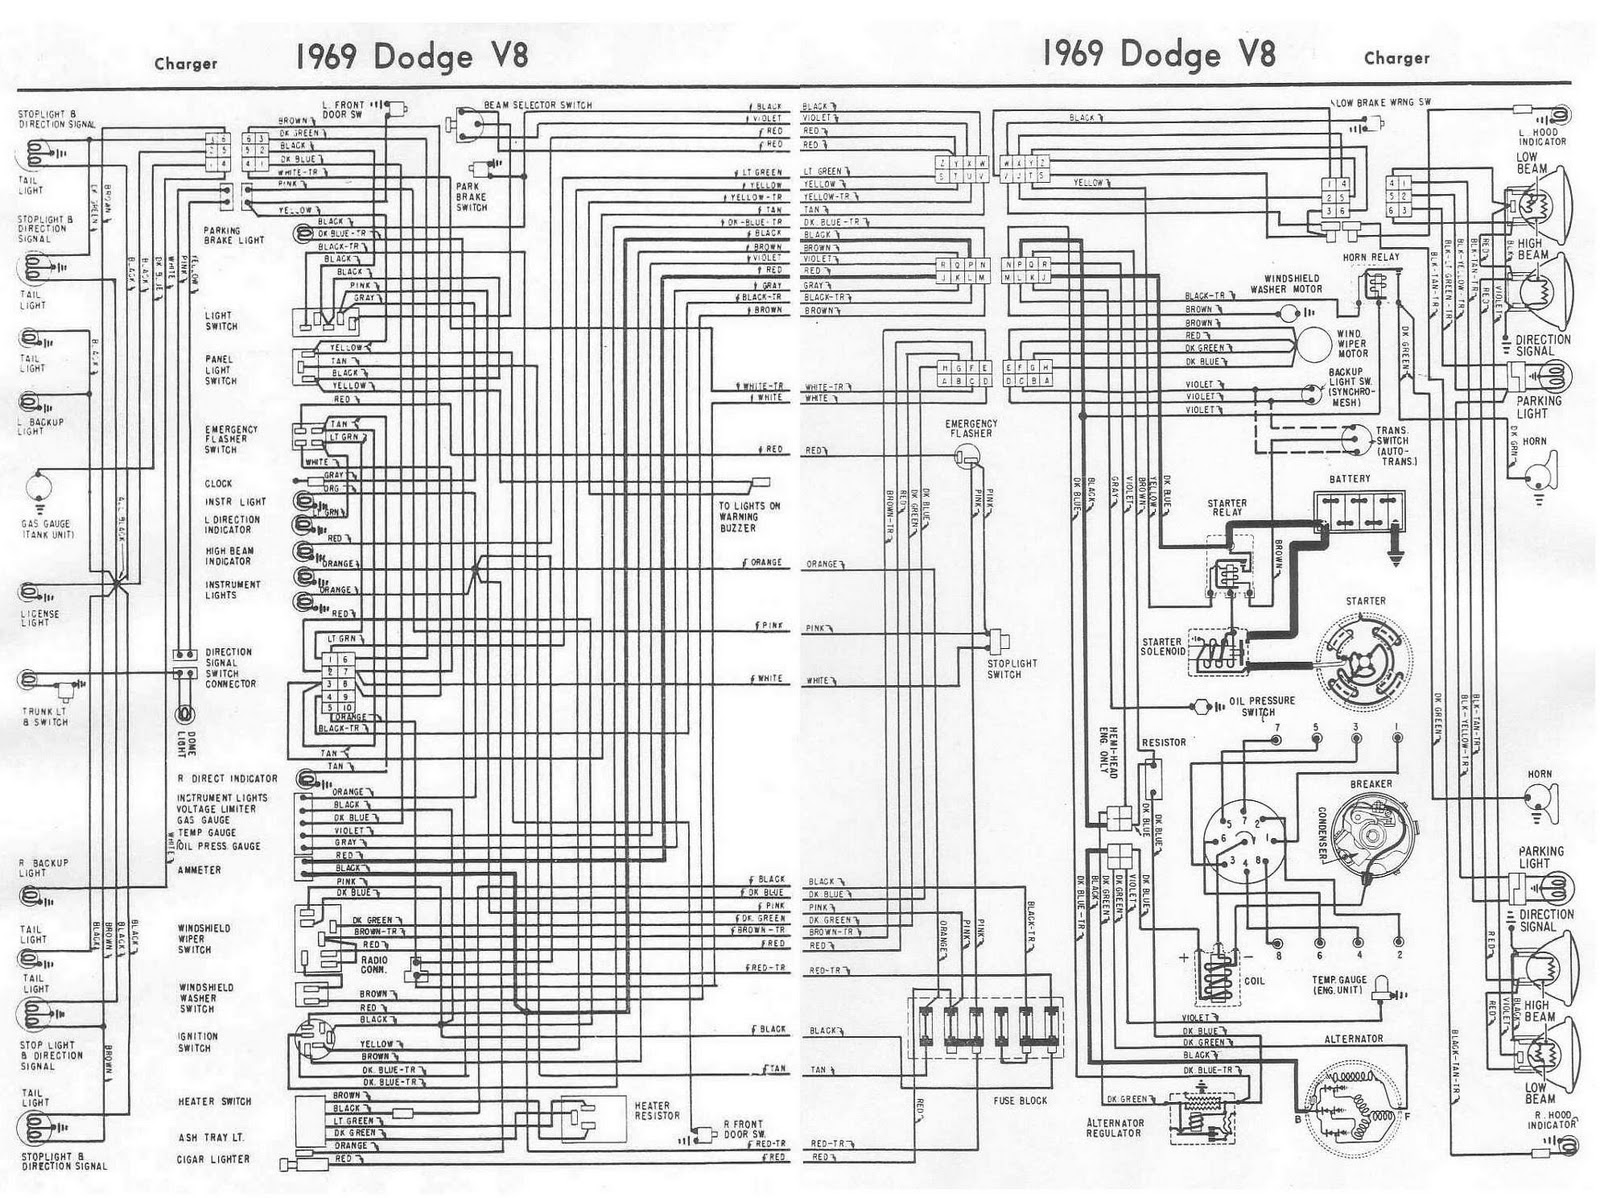 2010 Dodge Wiring Diagram FULL Version HD Quality Wiring Diagram -  TINADIAGRAM.LABO-WEB.FRDiagram Database